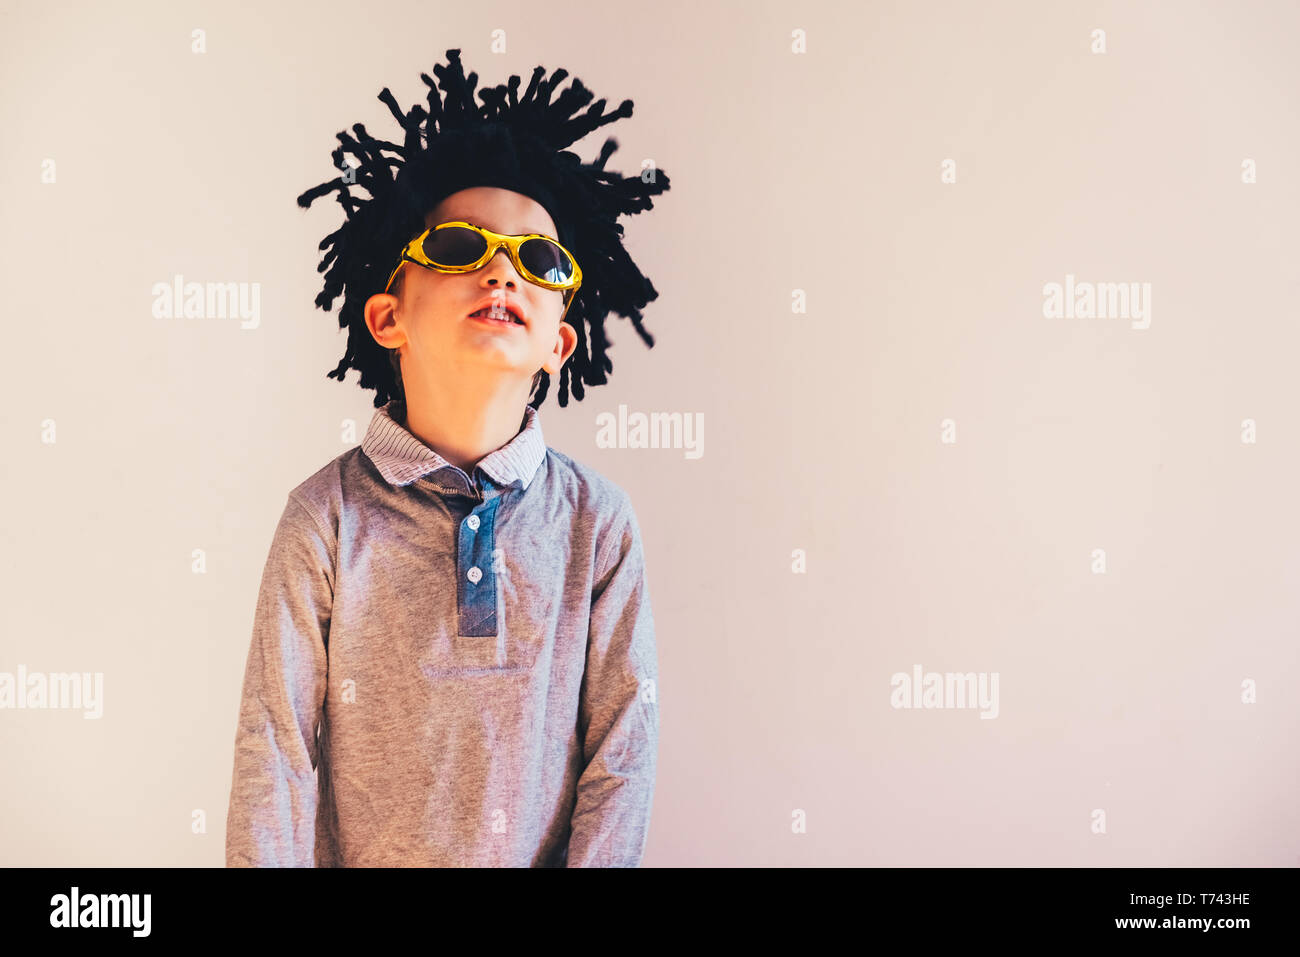 Child with rastafari wig dancing cheerful, isolated copy space white background. - Stock Image